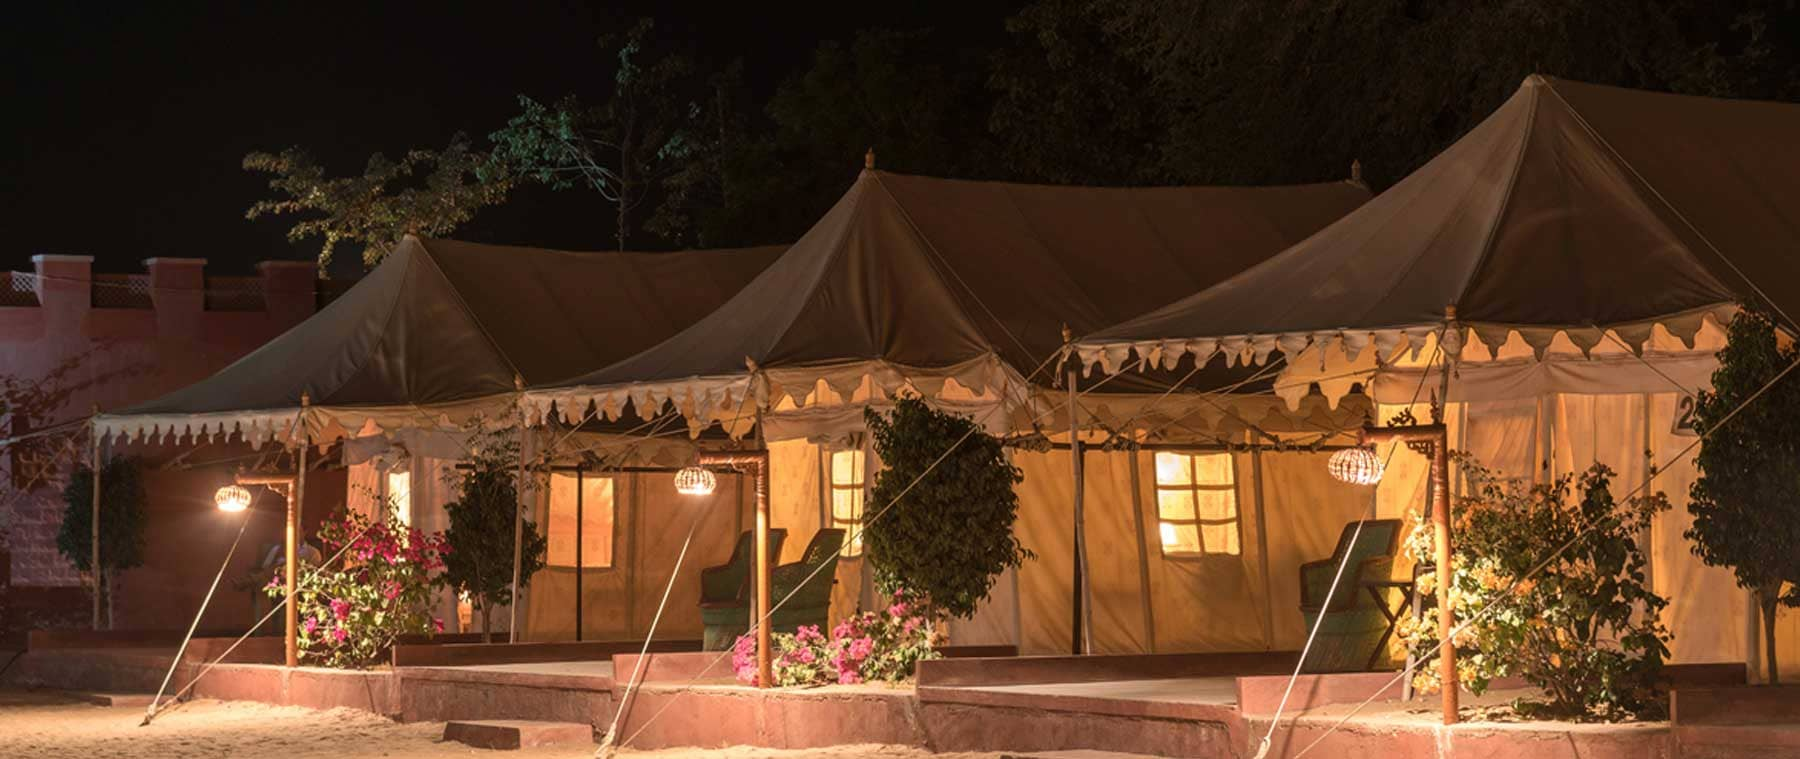 Enjoy evening program and stay packages only at Camps in Rajasthan